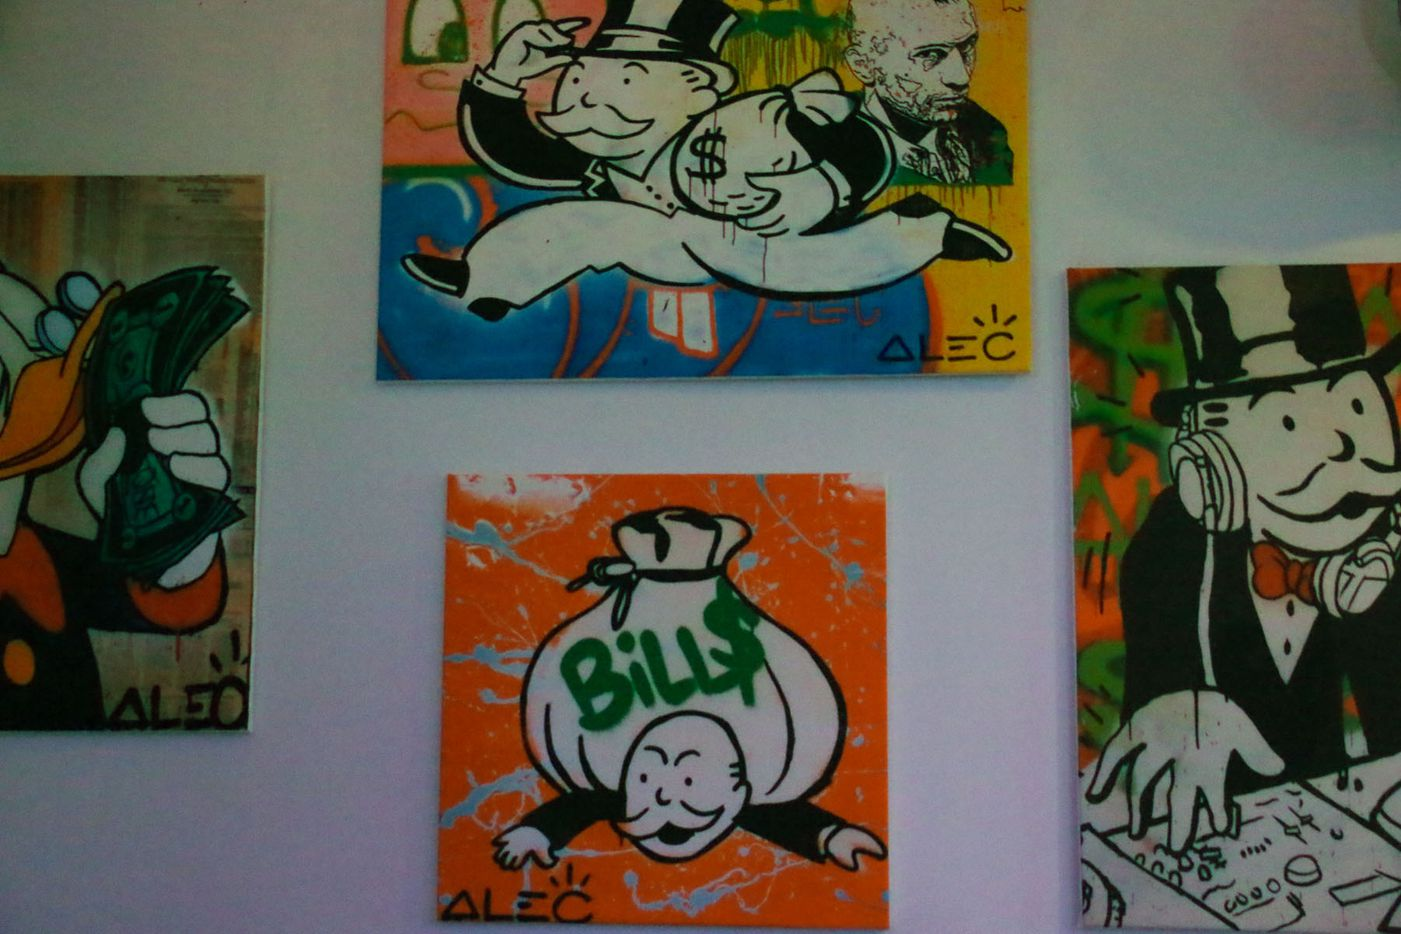 TBD has Monopoly art on the walls.